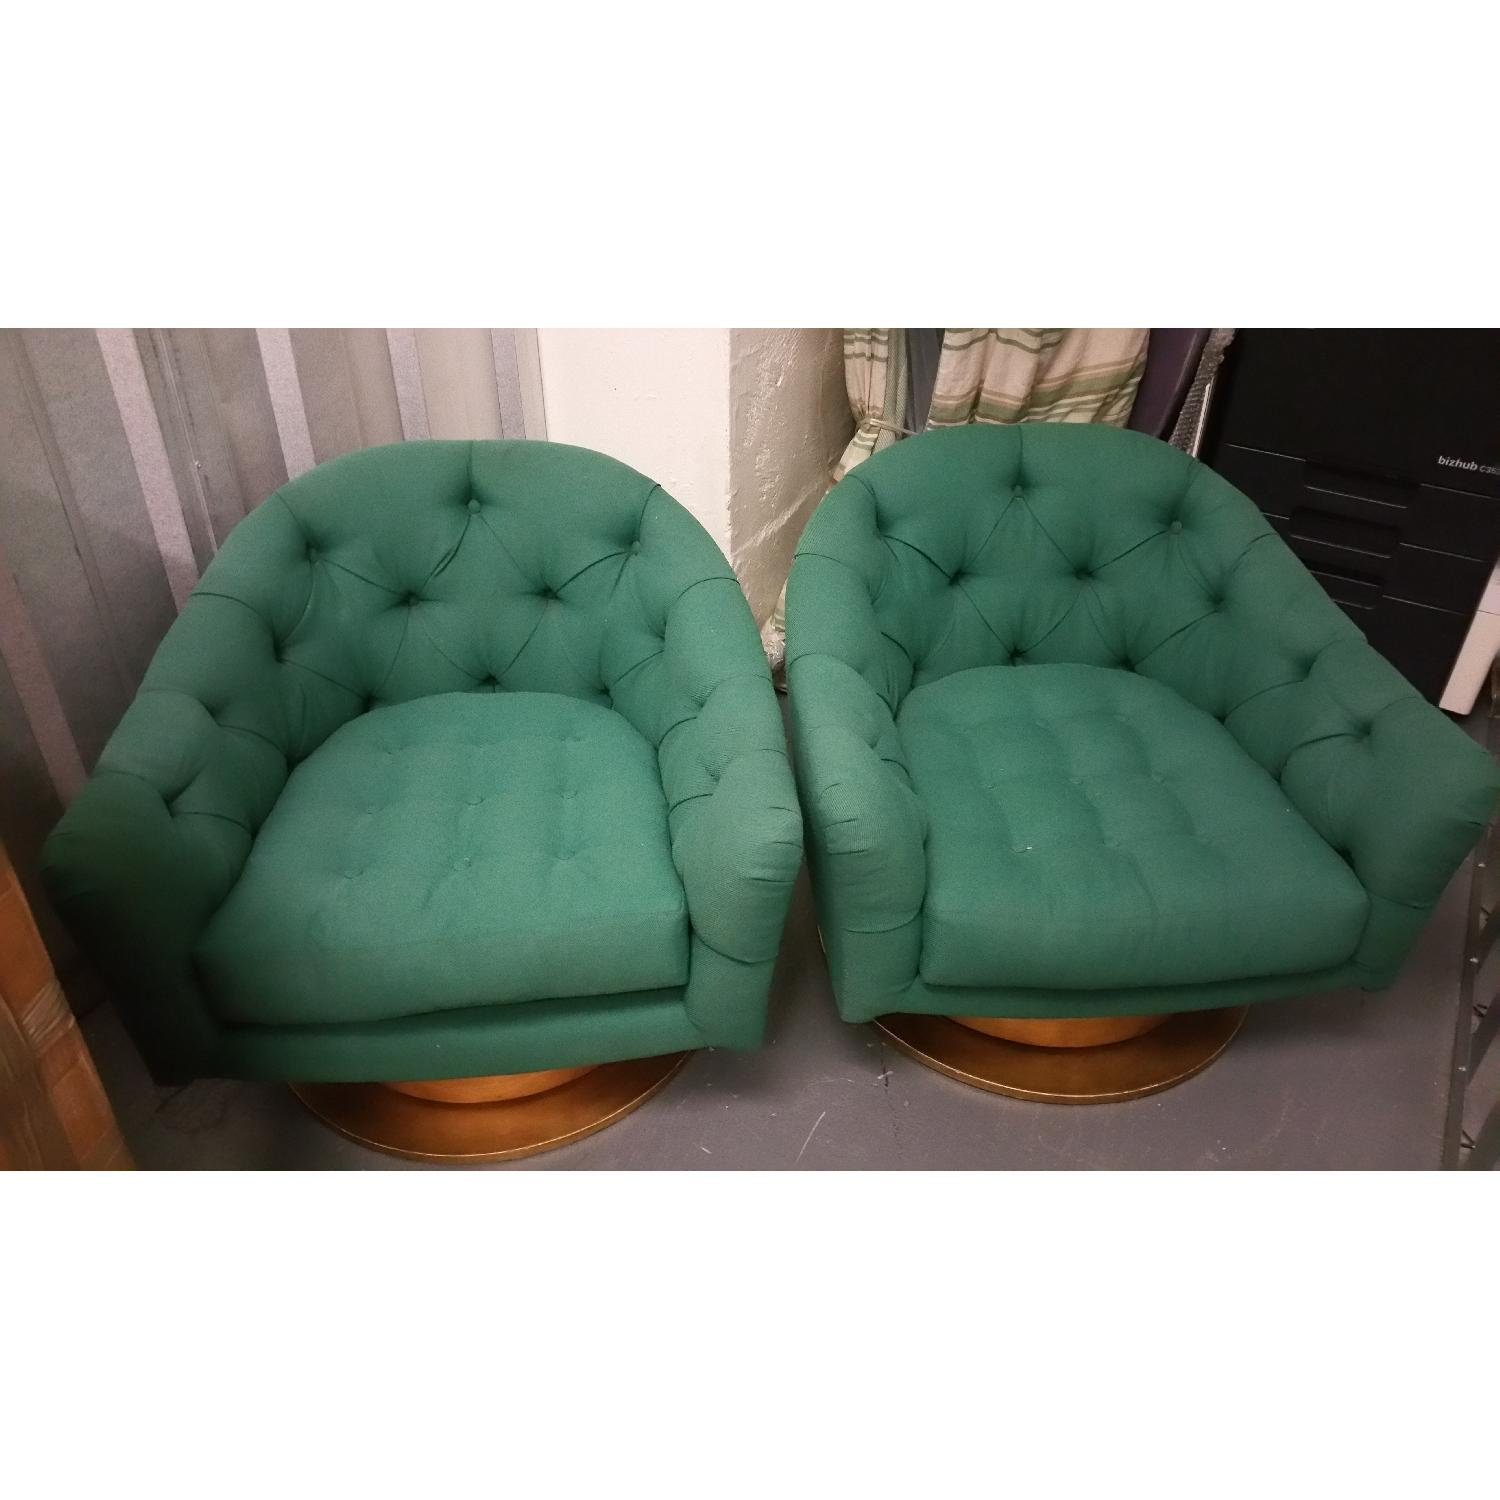 Emerald Green Swivel Tub Chairs - Pair - image-1